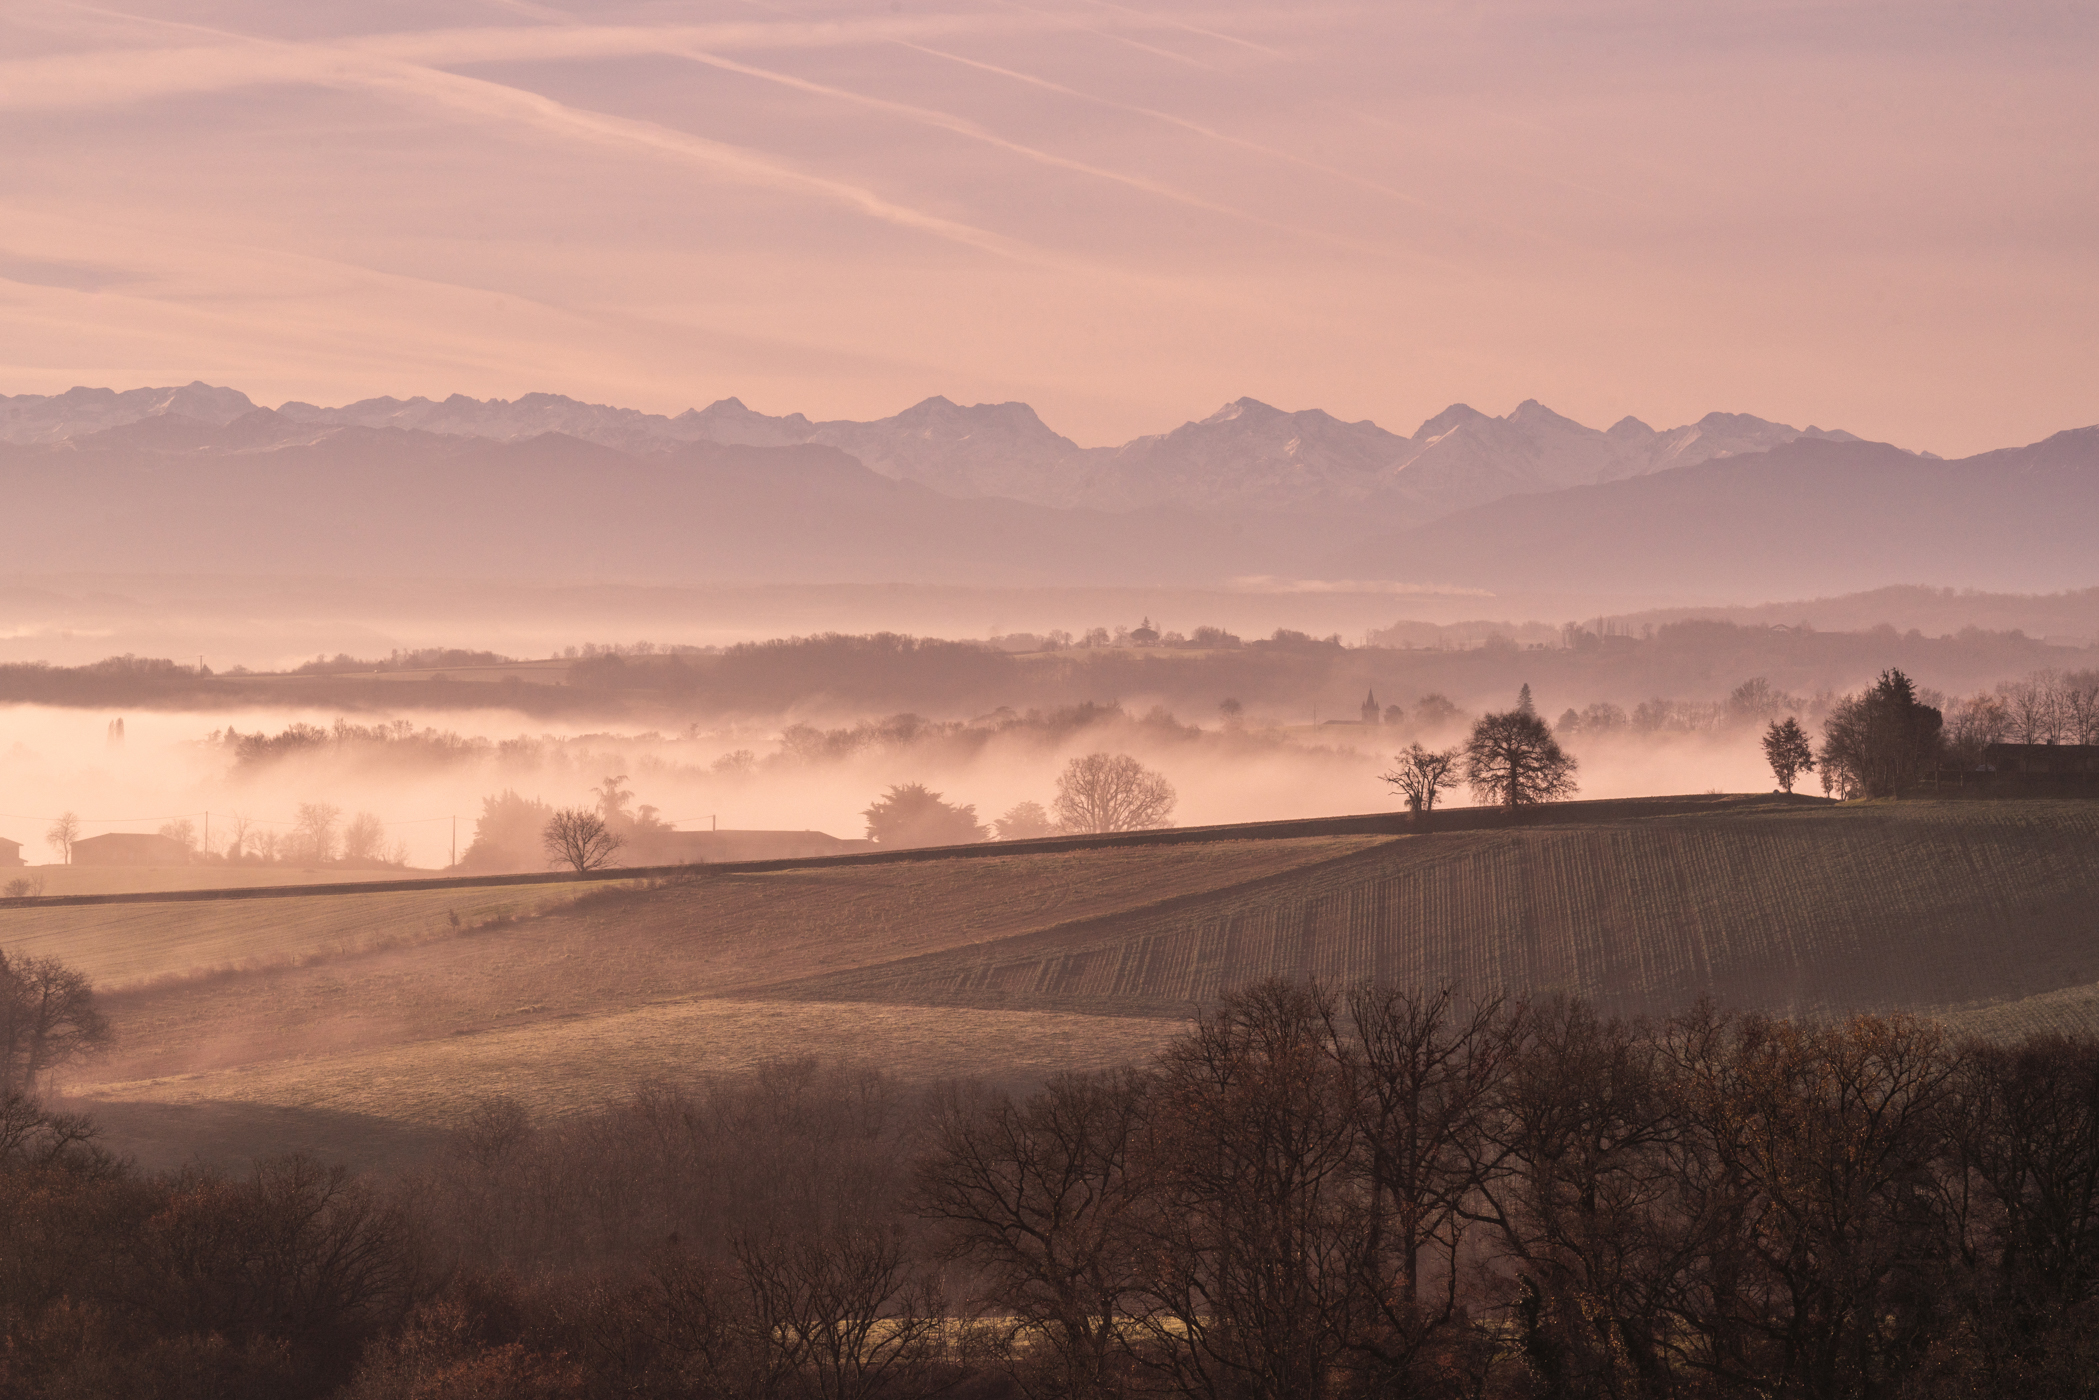 Misty mountains with the pyrenees in the distance